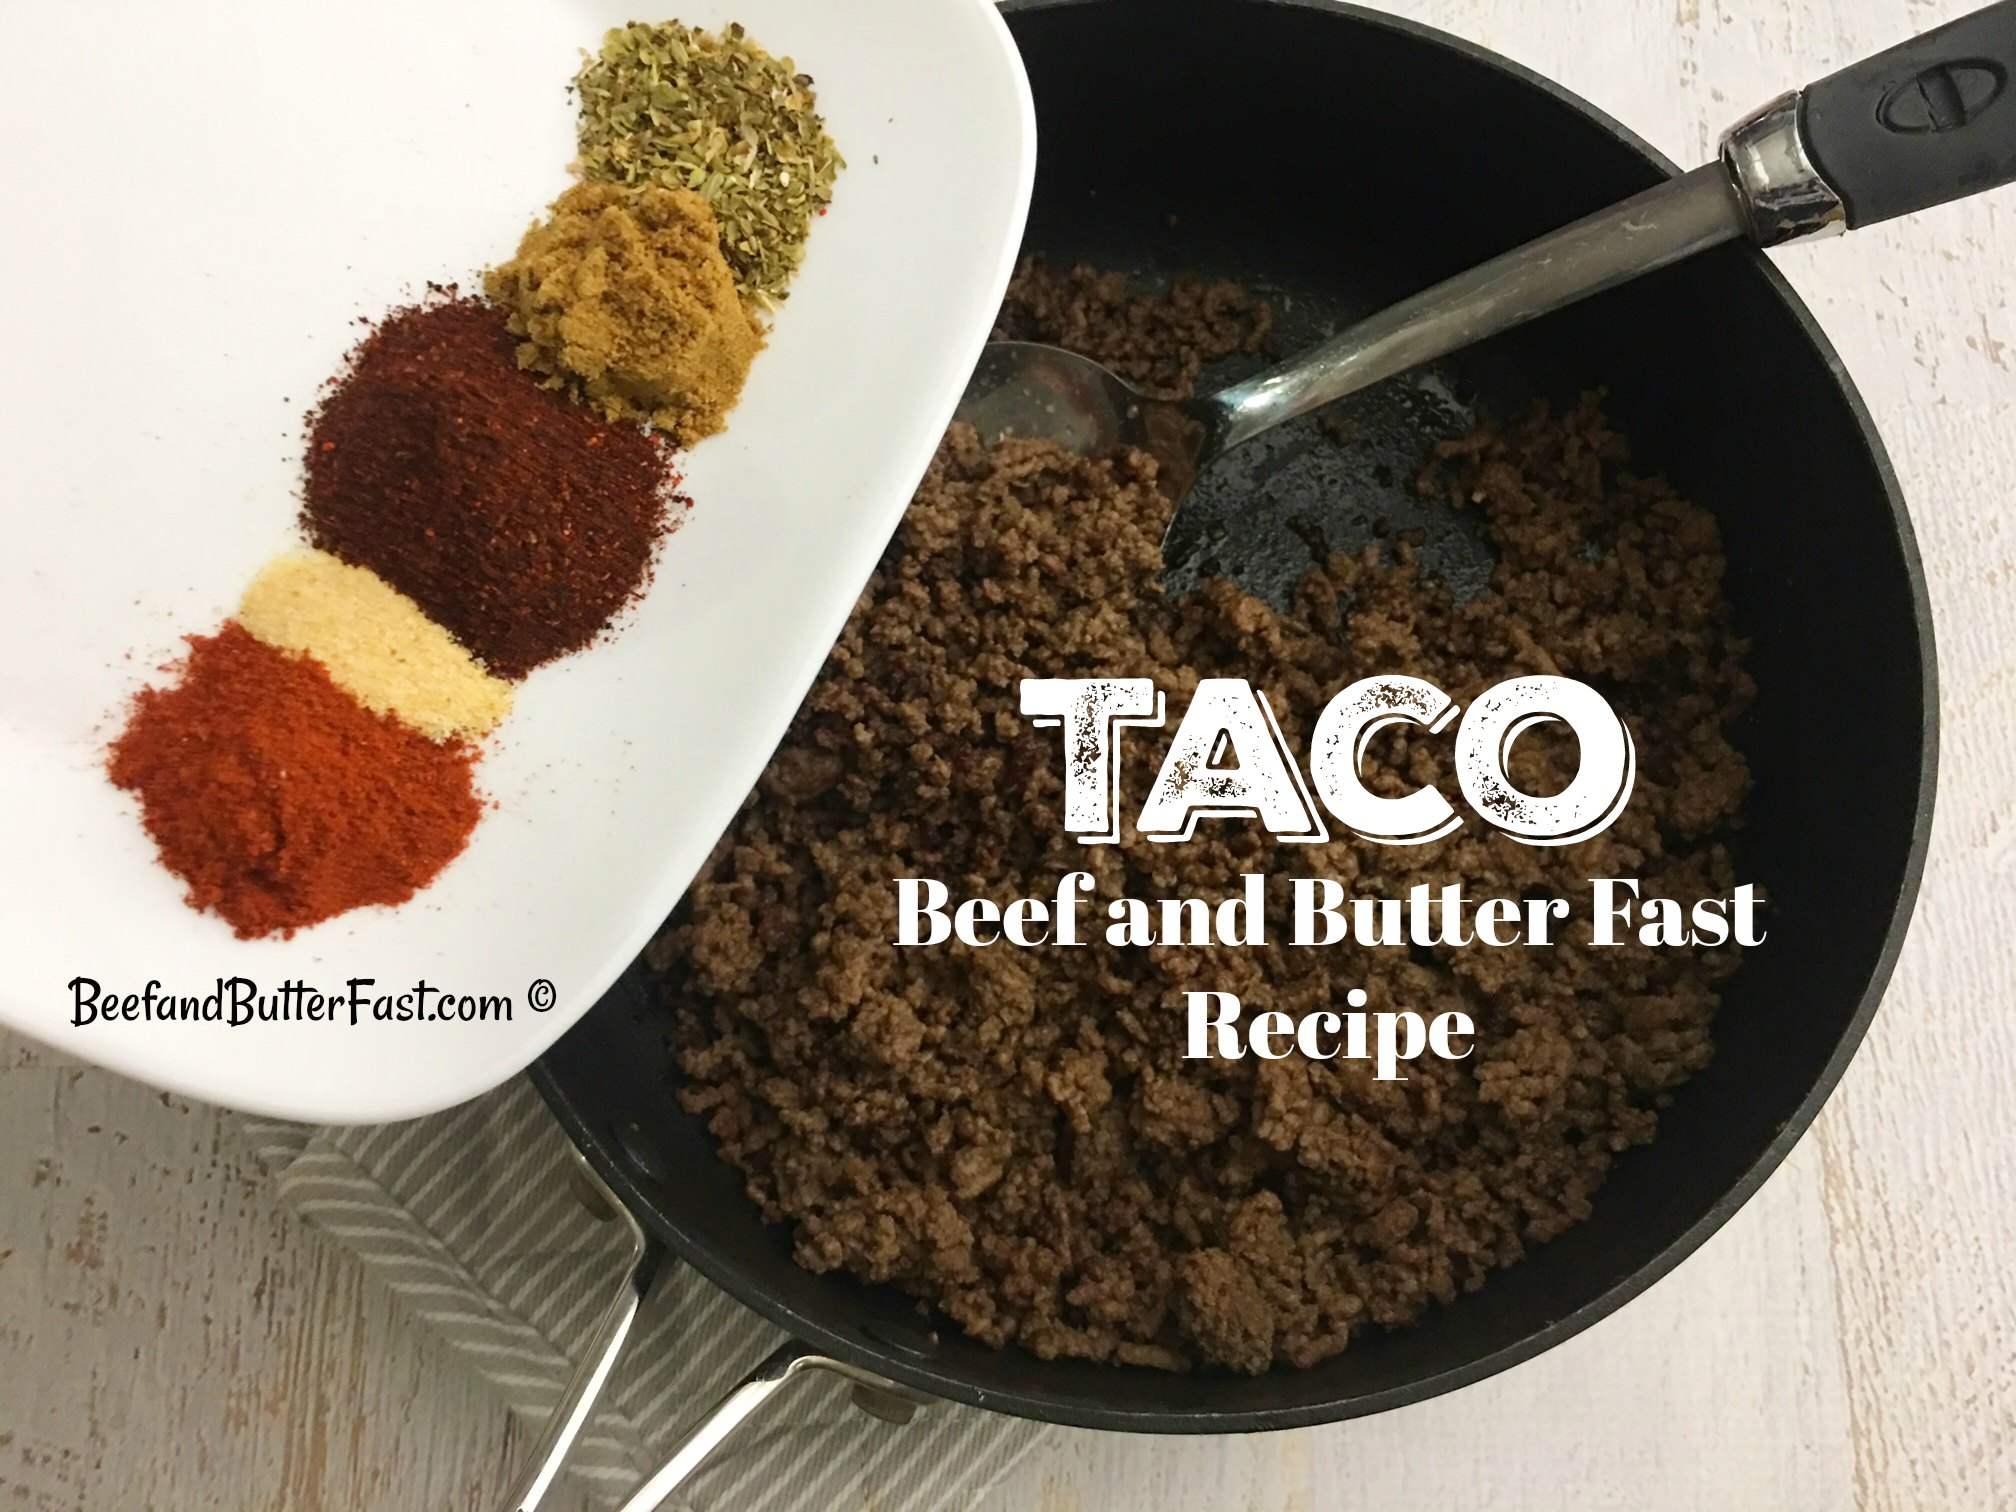 Taco Beef and Butter Fast Recipe